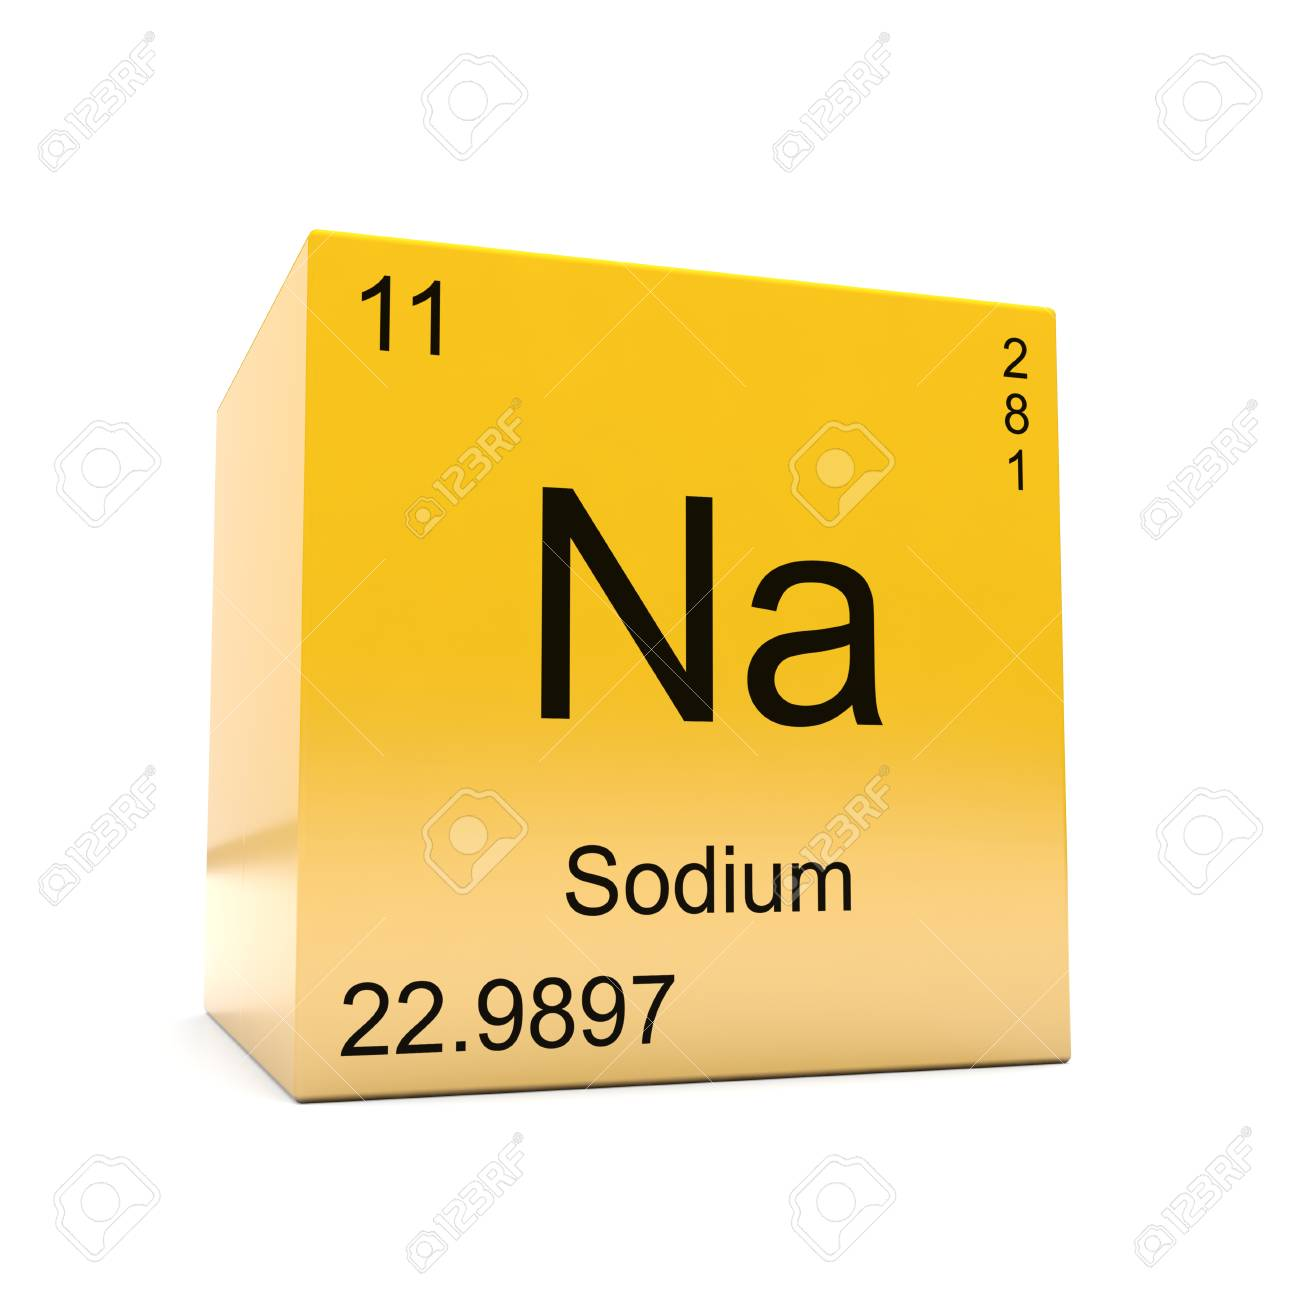 Sodium chemical element symbol from the periodic table displayed sodium chemical element symbol from the periodic table displayed on glossy yellow cube stock photo urtaz Image collections